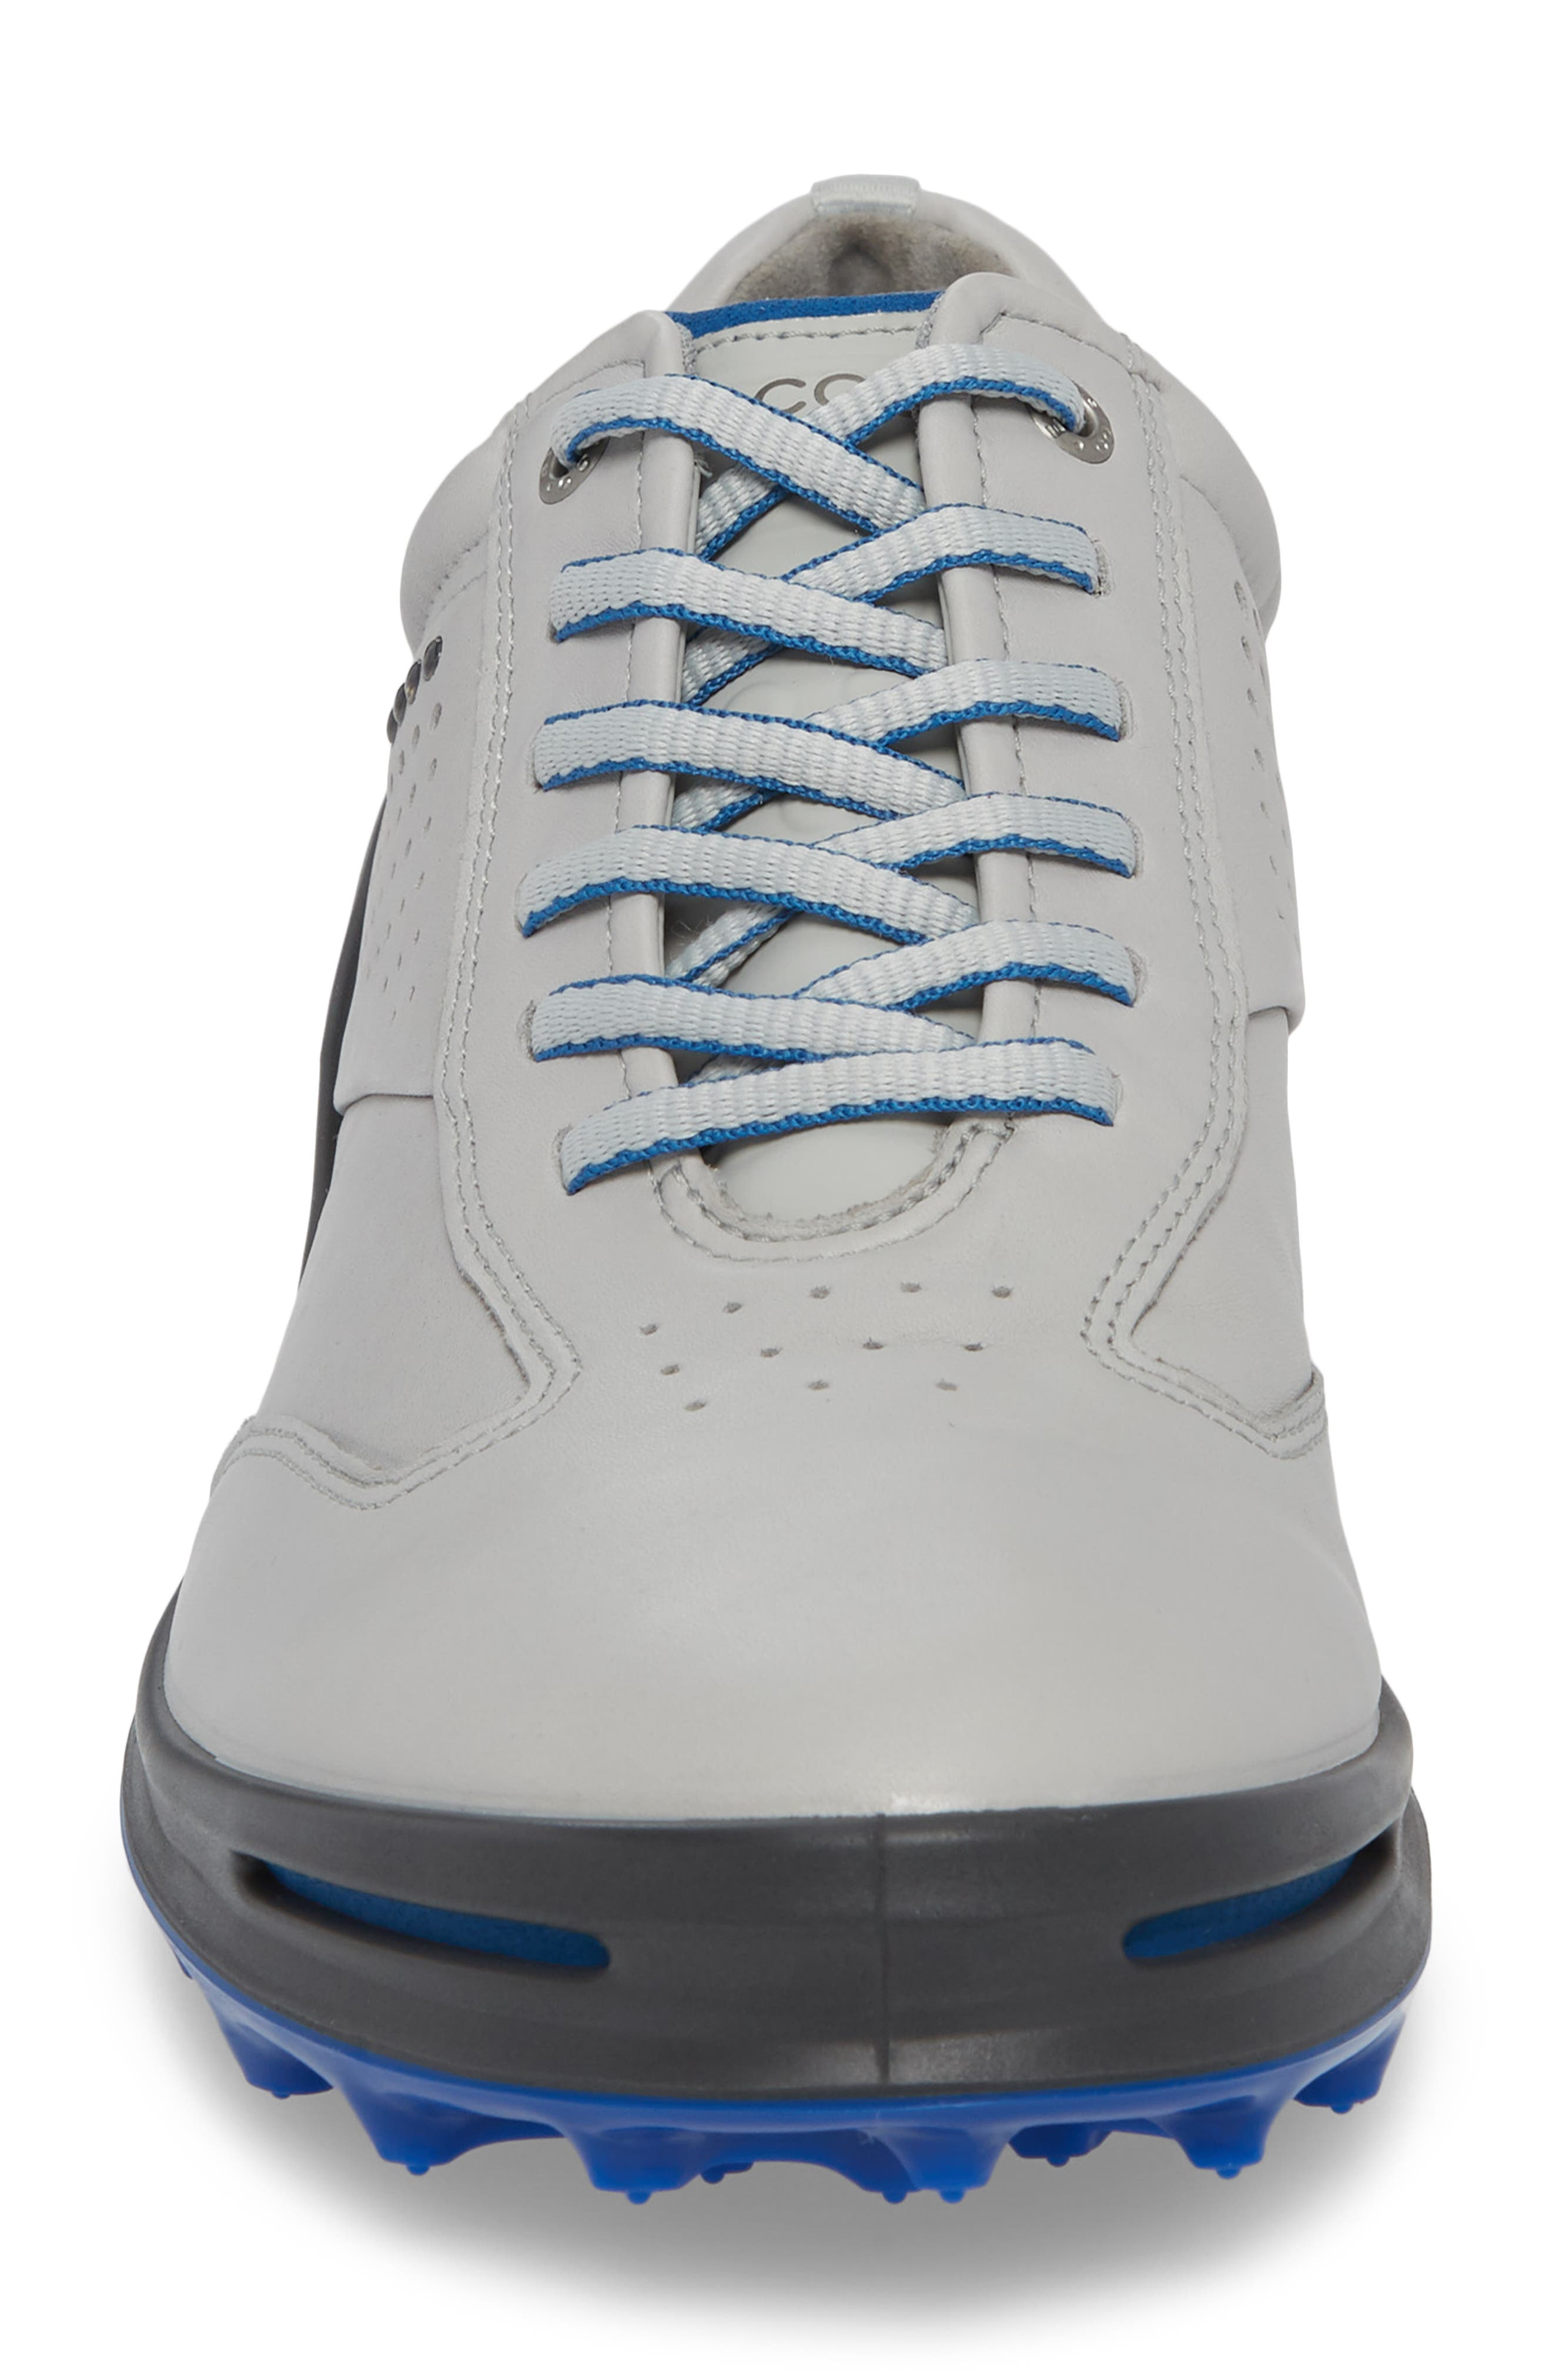 Cage Pro Golf Shoe,                             Alternate thumbnail 4, color,                             CONCRETE/ BERMUDA BLUE LEATHER